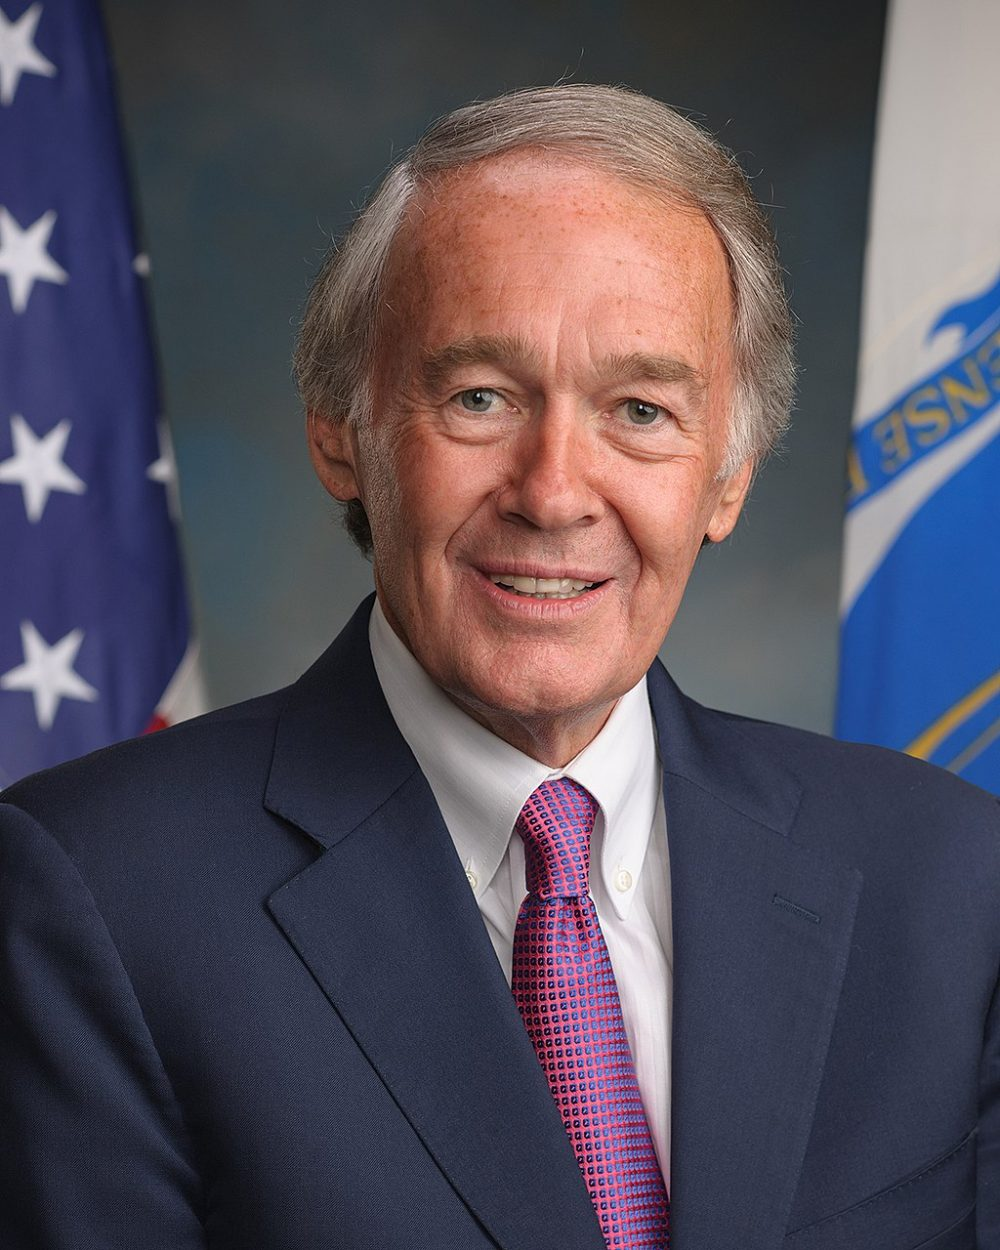 Ed Markey's Claim That Solitary Confinement Connected To Race, Sexuality, Disability, or Immigration Status Is False, Massachusetts Prison Officials Say